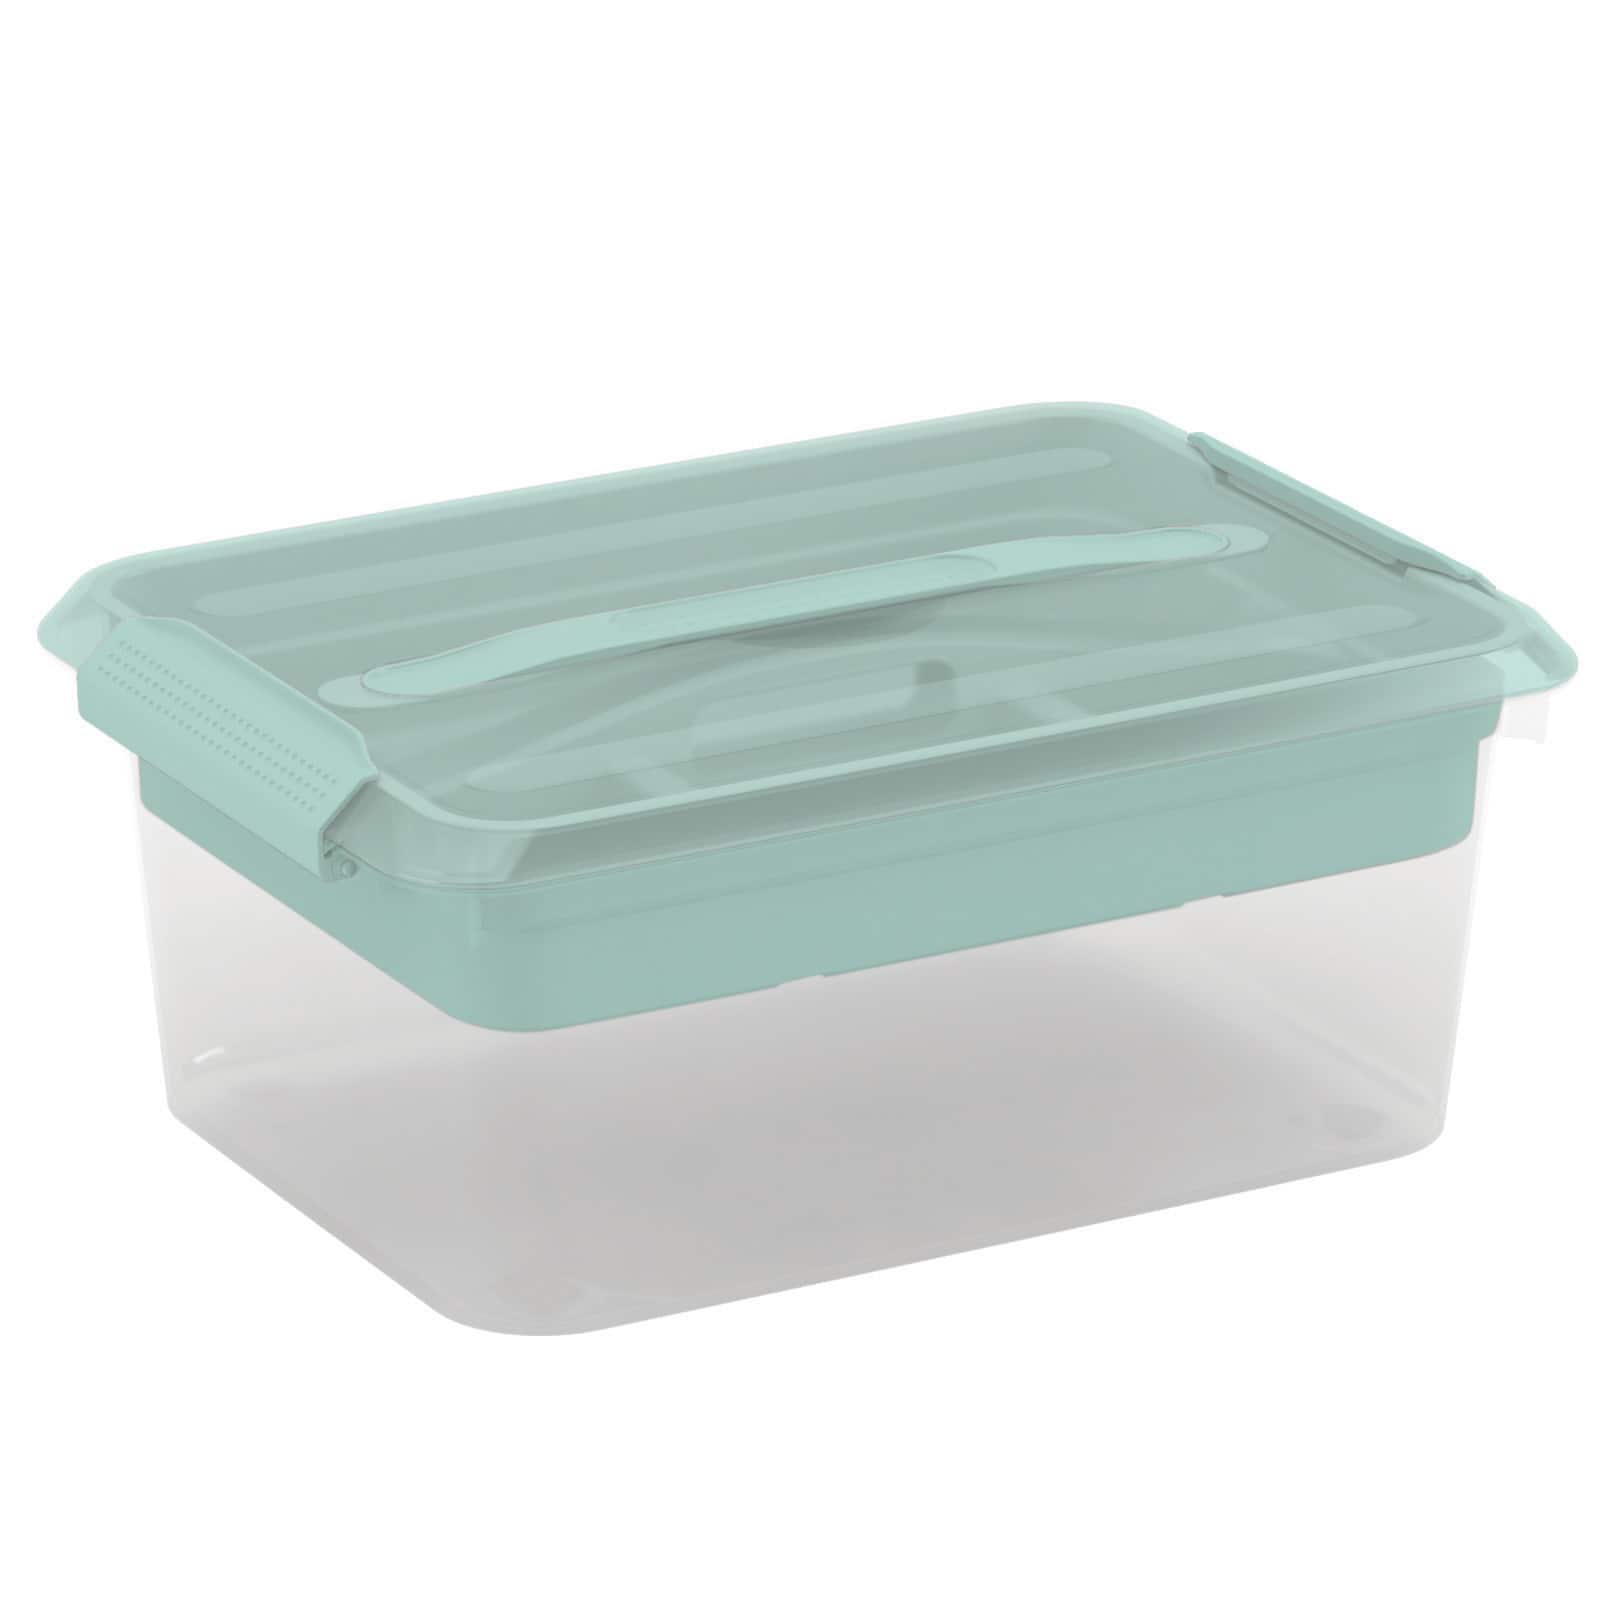 Latchmate Turquoise Storage Box With Tray By Recollections™